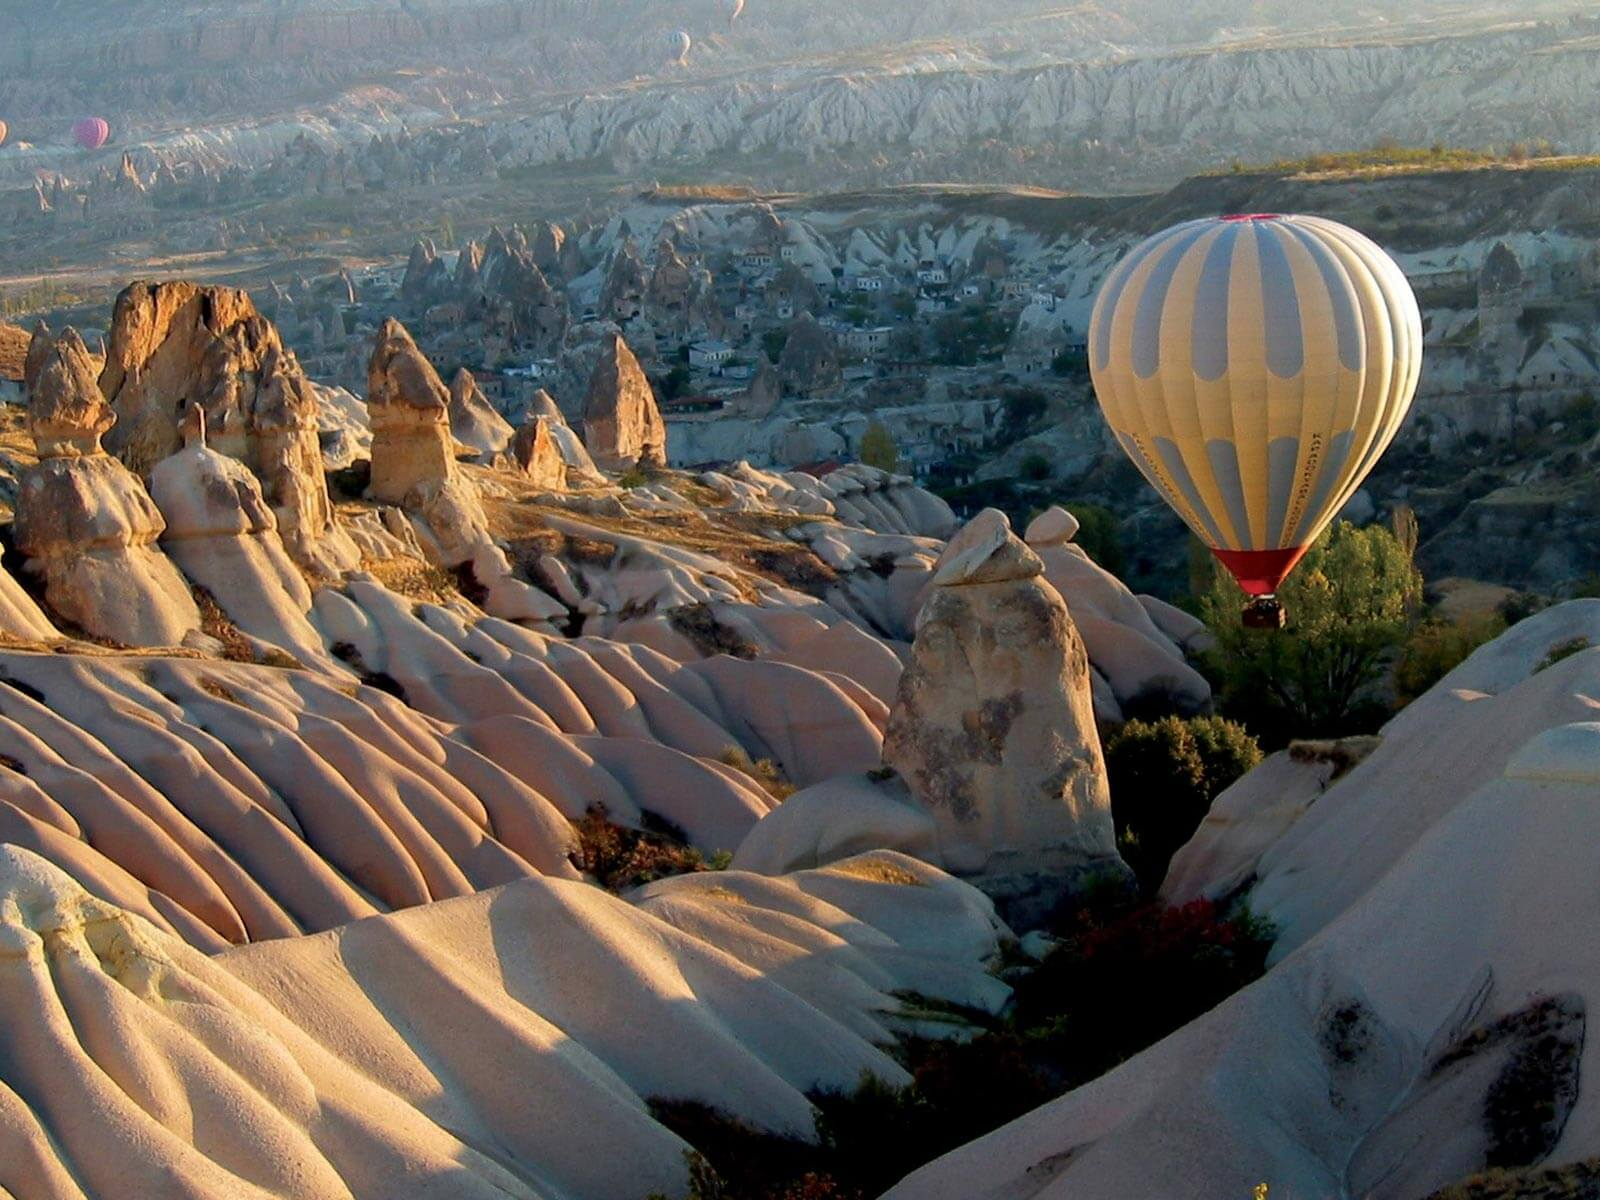 Photo: www.travelplanofcapadocia.com